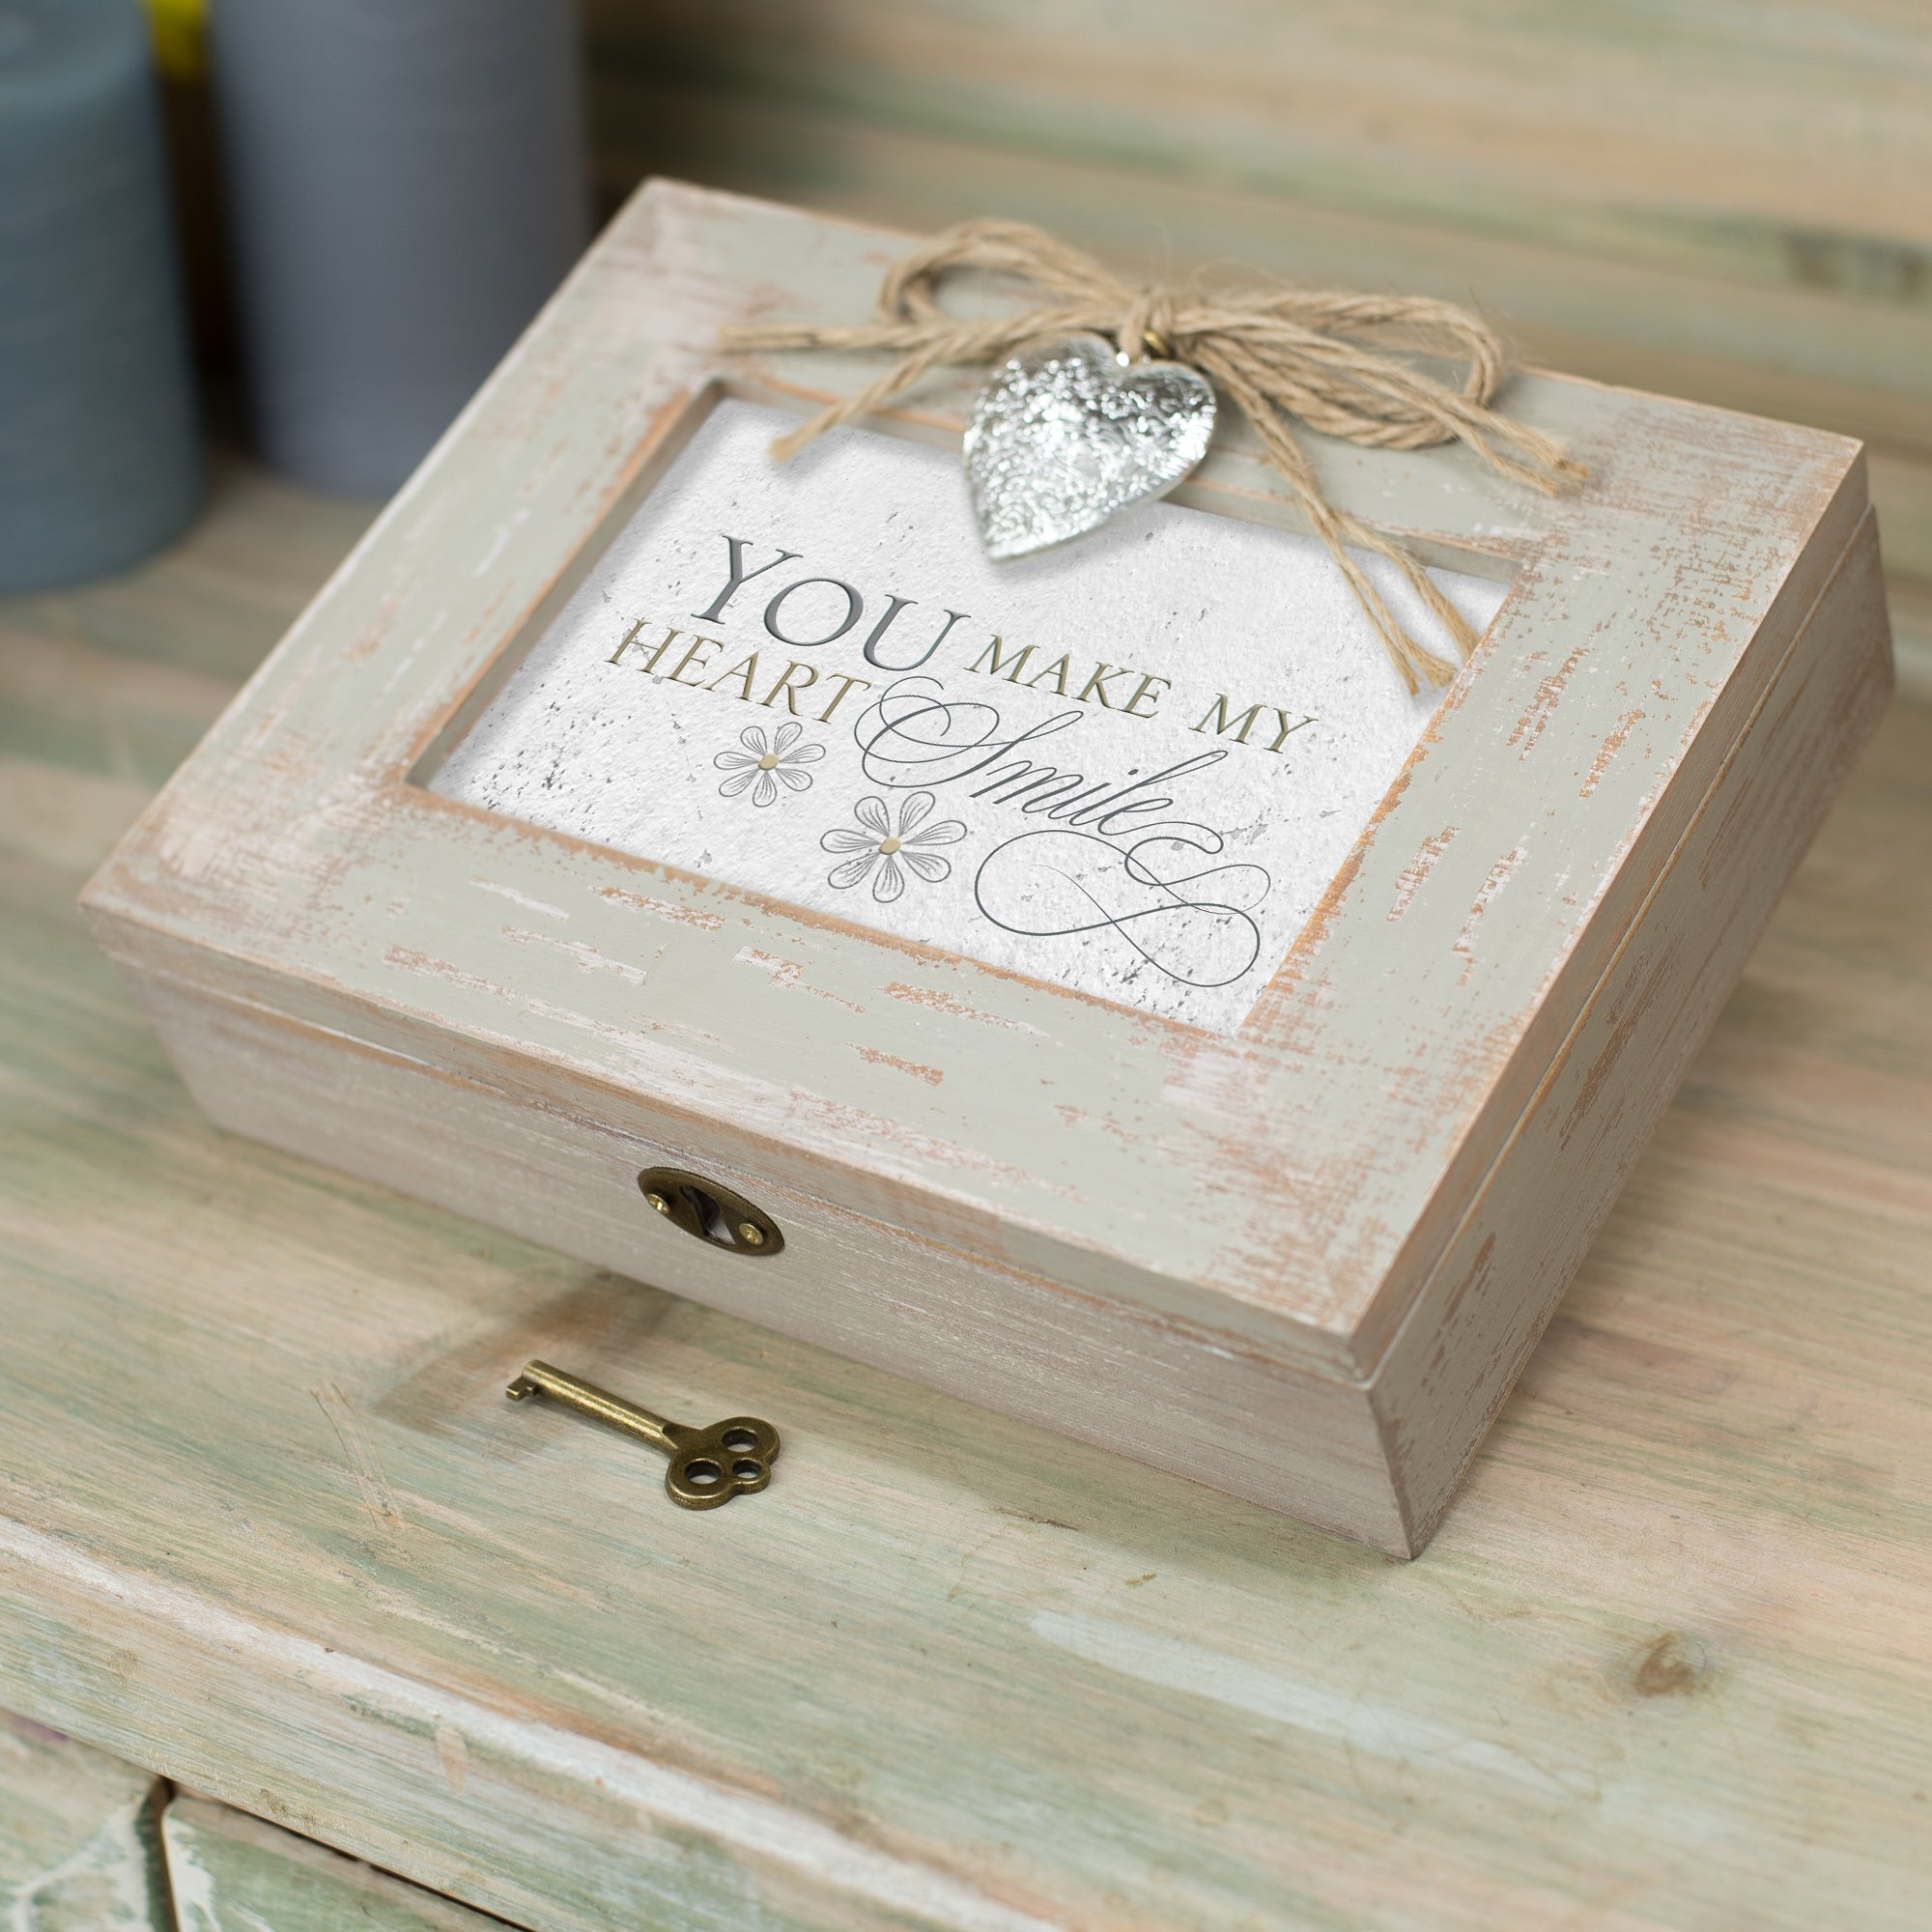 Cottage Garden You Make My Heart Smile Distressed Wood Locket Jewelry Music Box Plays Tune You Light Up My Life by Cottage Garden (Image #4)